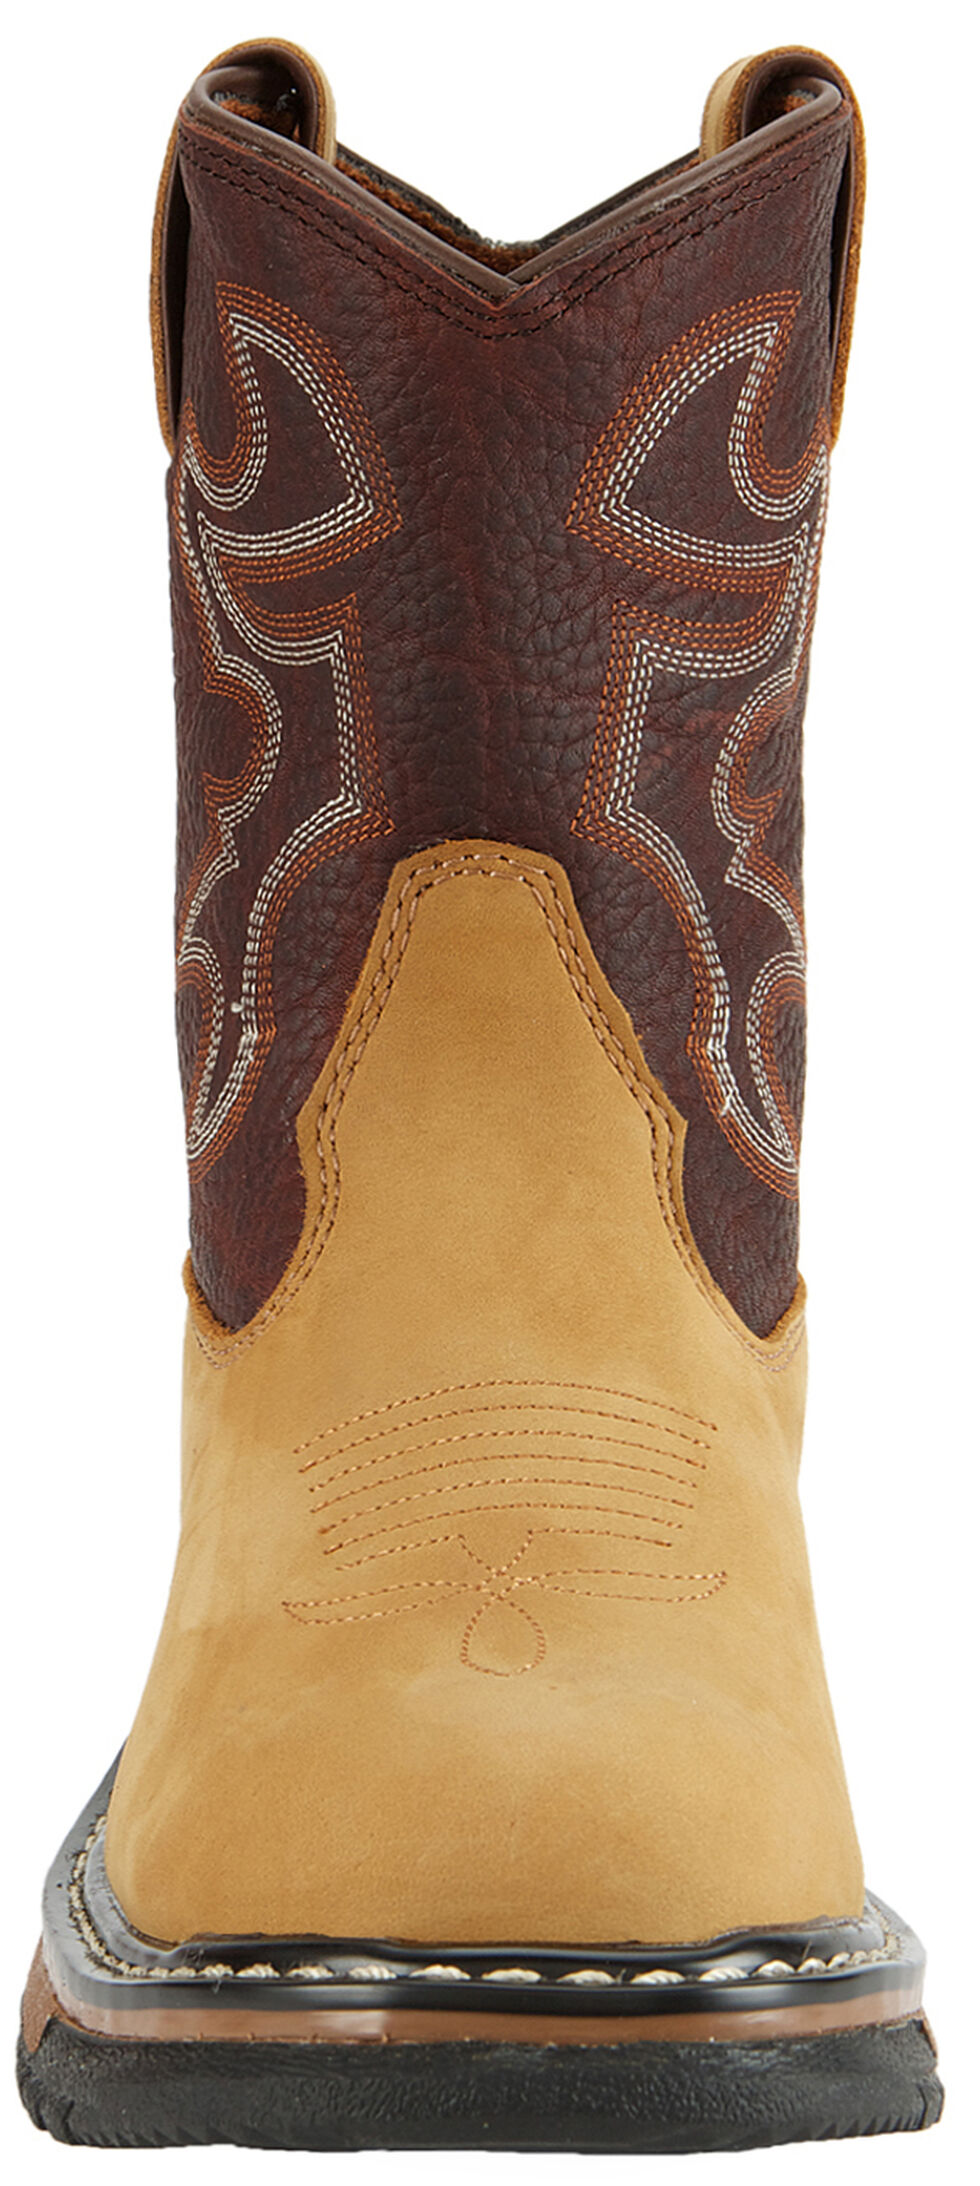 Rocky Kids' Branson Roper Western Boots - Round Toe, Brown, hi-res